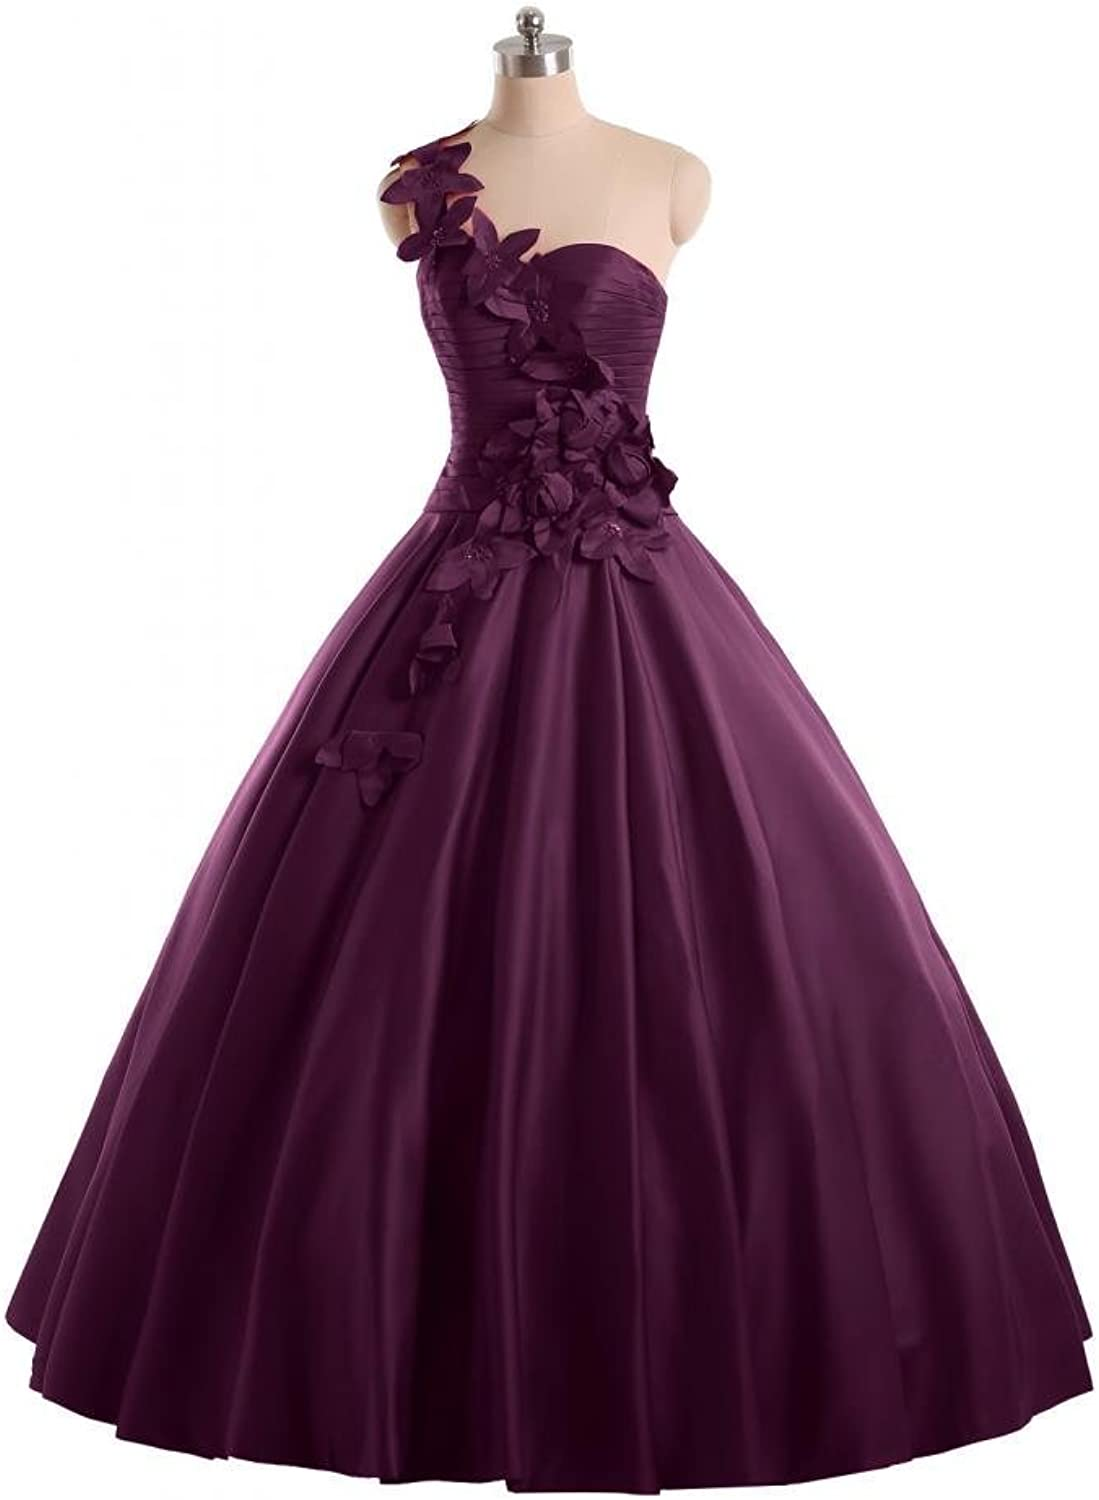 Angel Bride One Shoulder Ball Gowns Satin Floor Length Quinceanera Prom Dresses